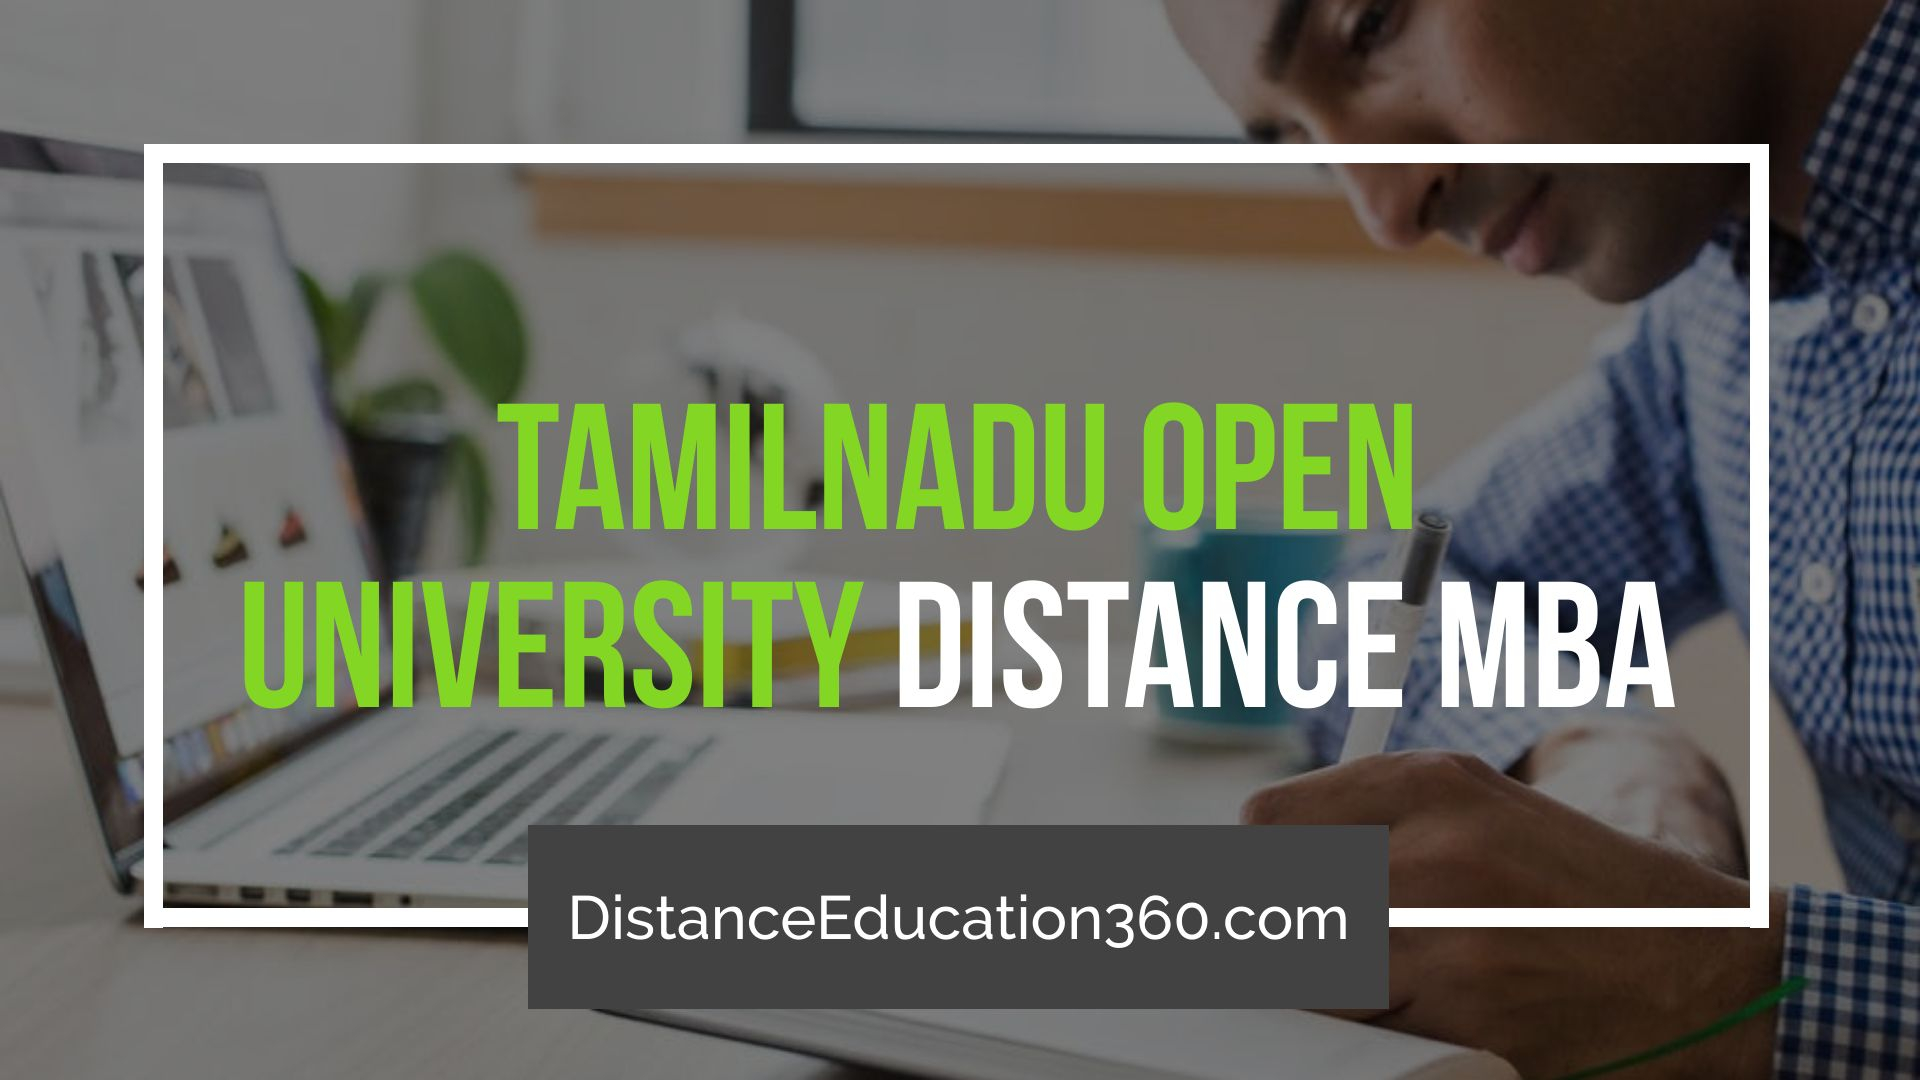 Tamil Nadu Open University (TNOU) Distance MBA